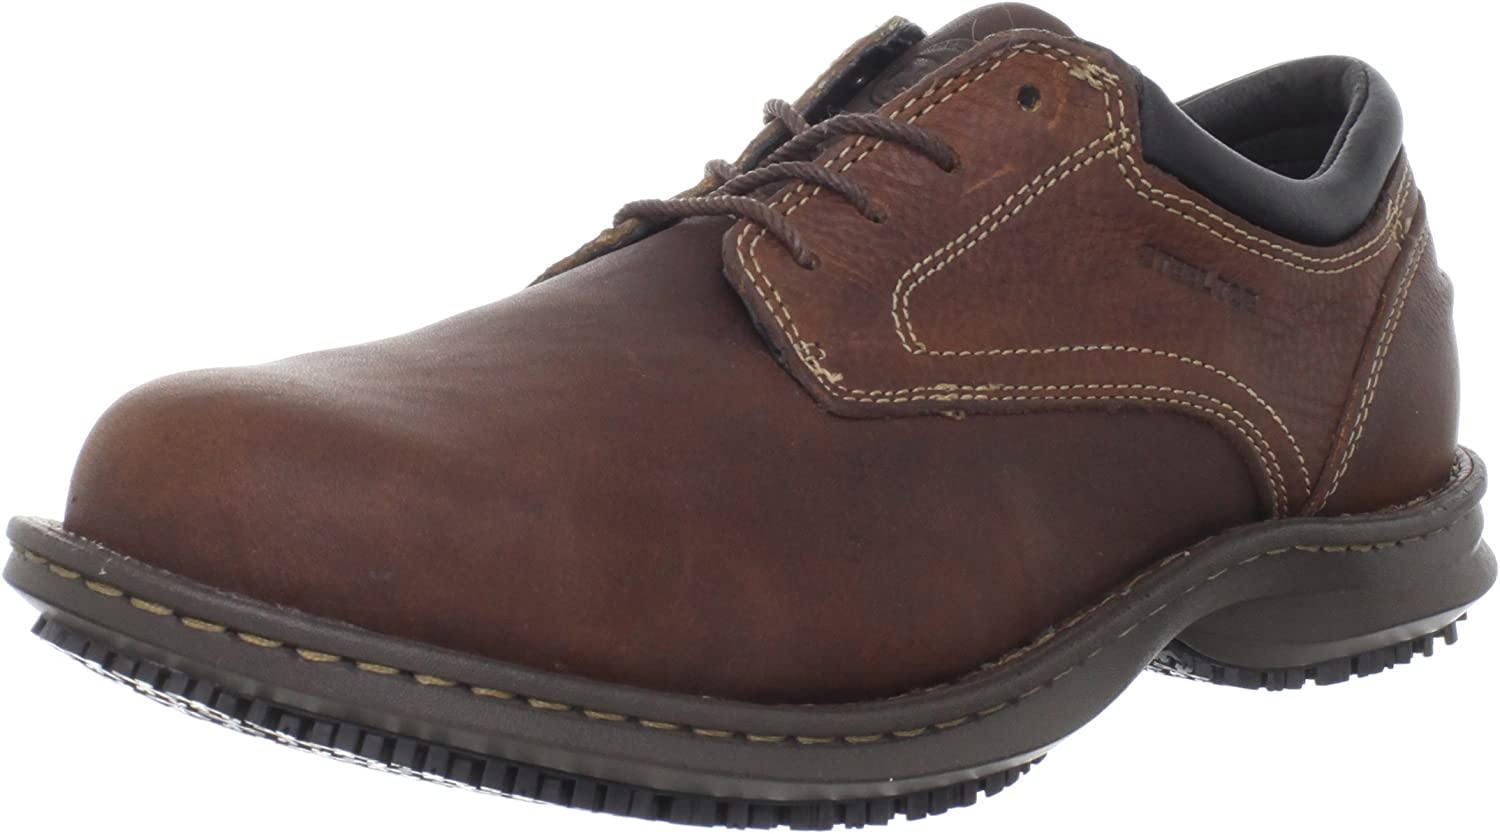 Timberland PRO 85590 Men's Gladstone ESD Oxford Shoe Brown 5 W US